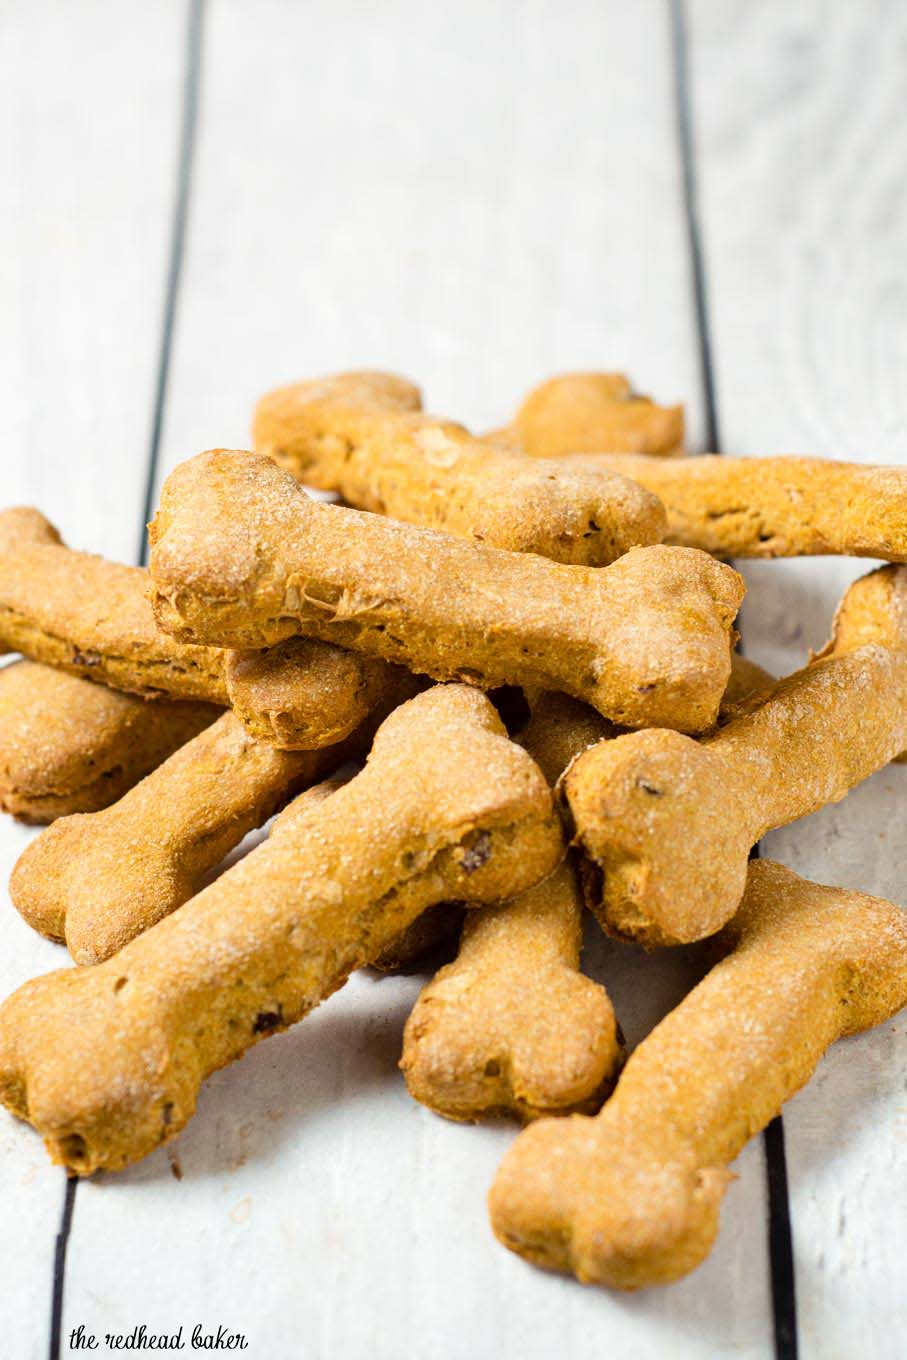 Pumpkin apple dog biscuits are a healthy, crunchy treat for your furry friend. Substitute almond flour for the wheat flour if your dog can't have grains.